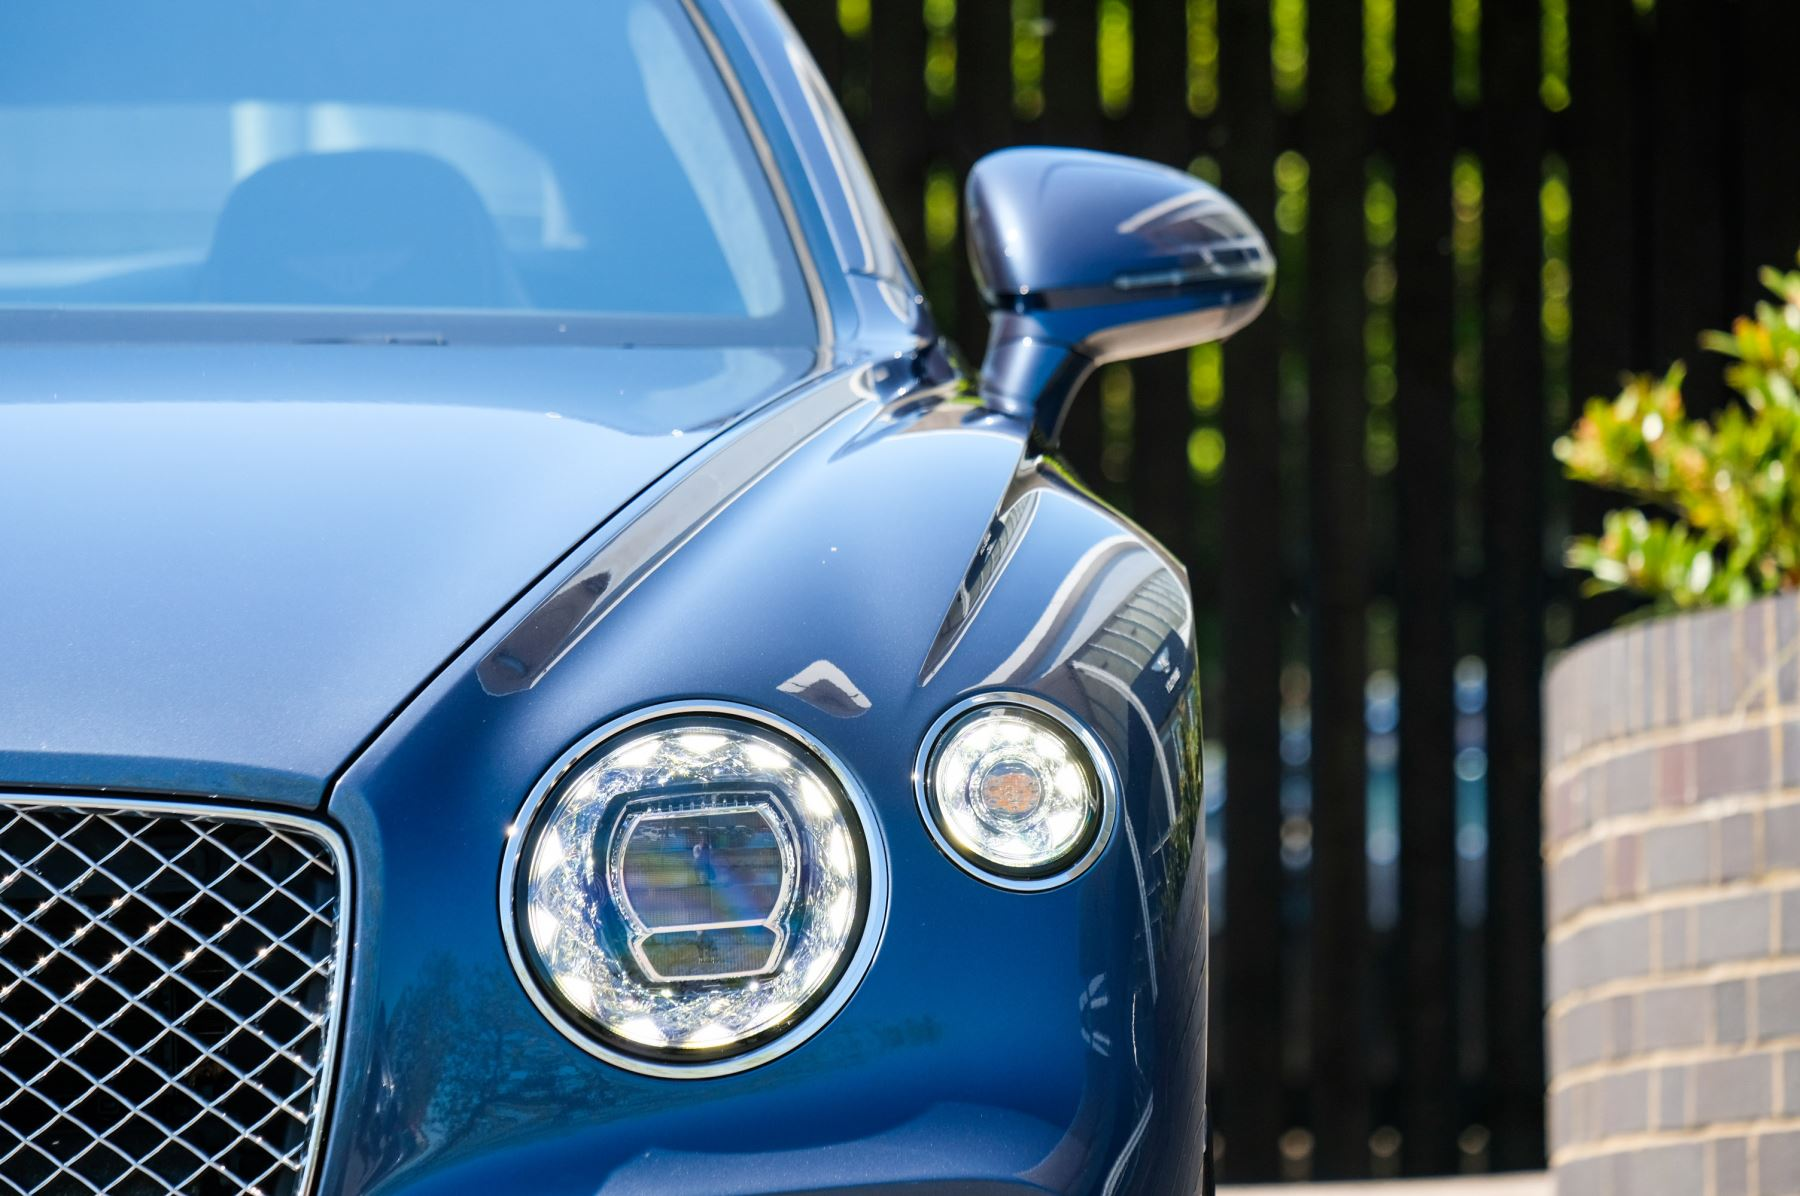 Bentley Continental GT 6.0 W12 - CITY + TOURING SPECIFICATION image 6